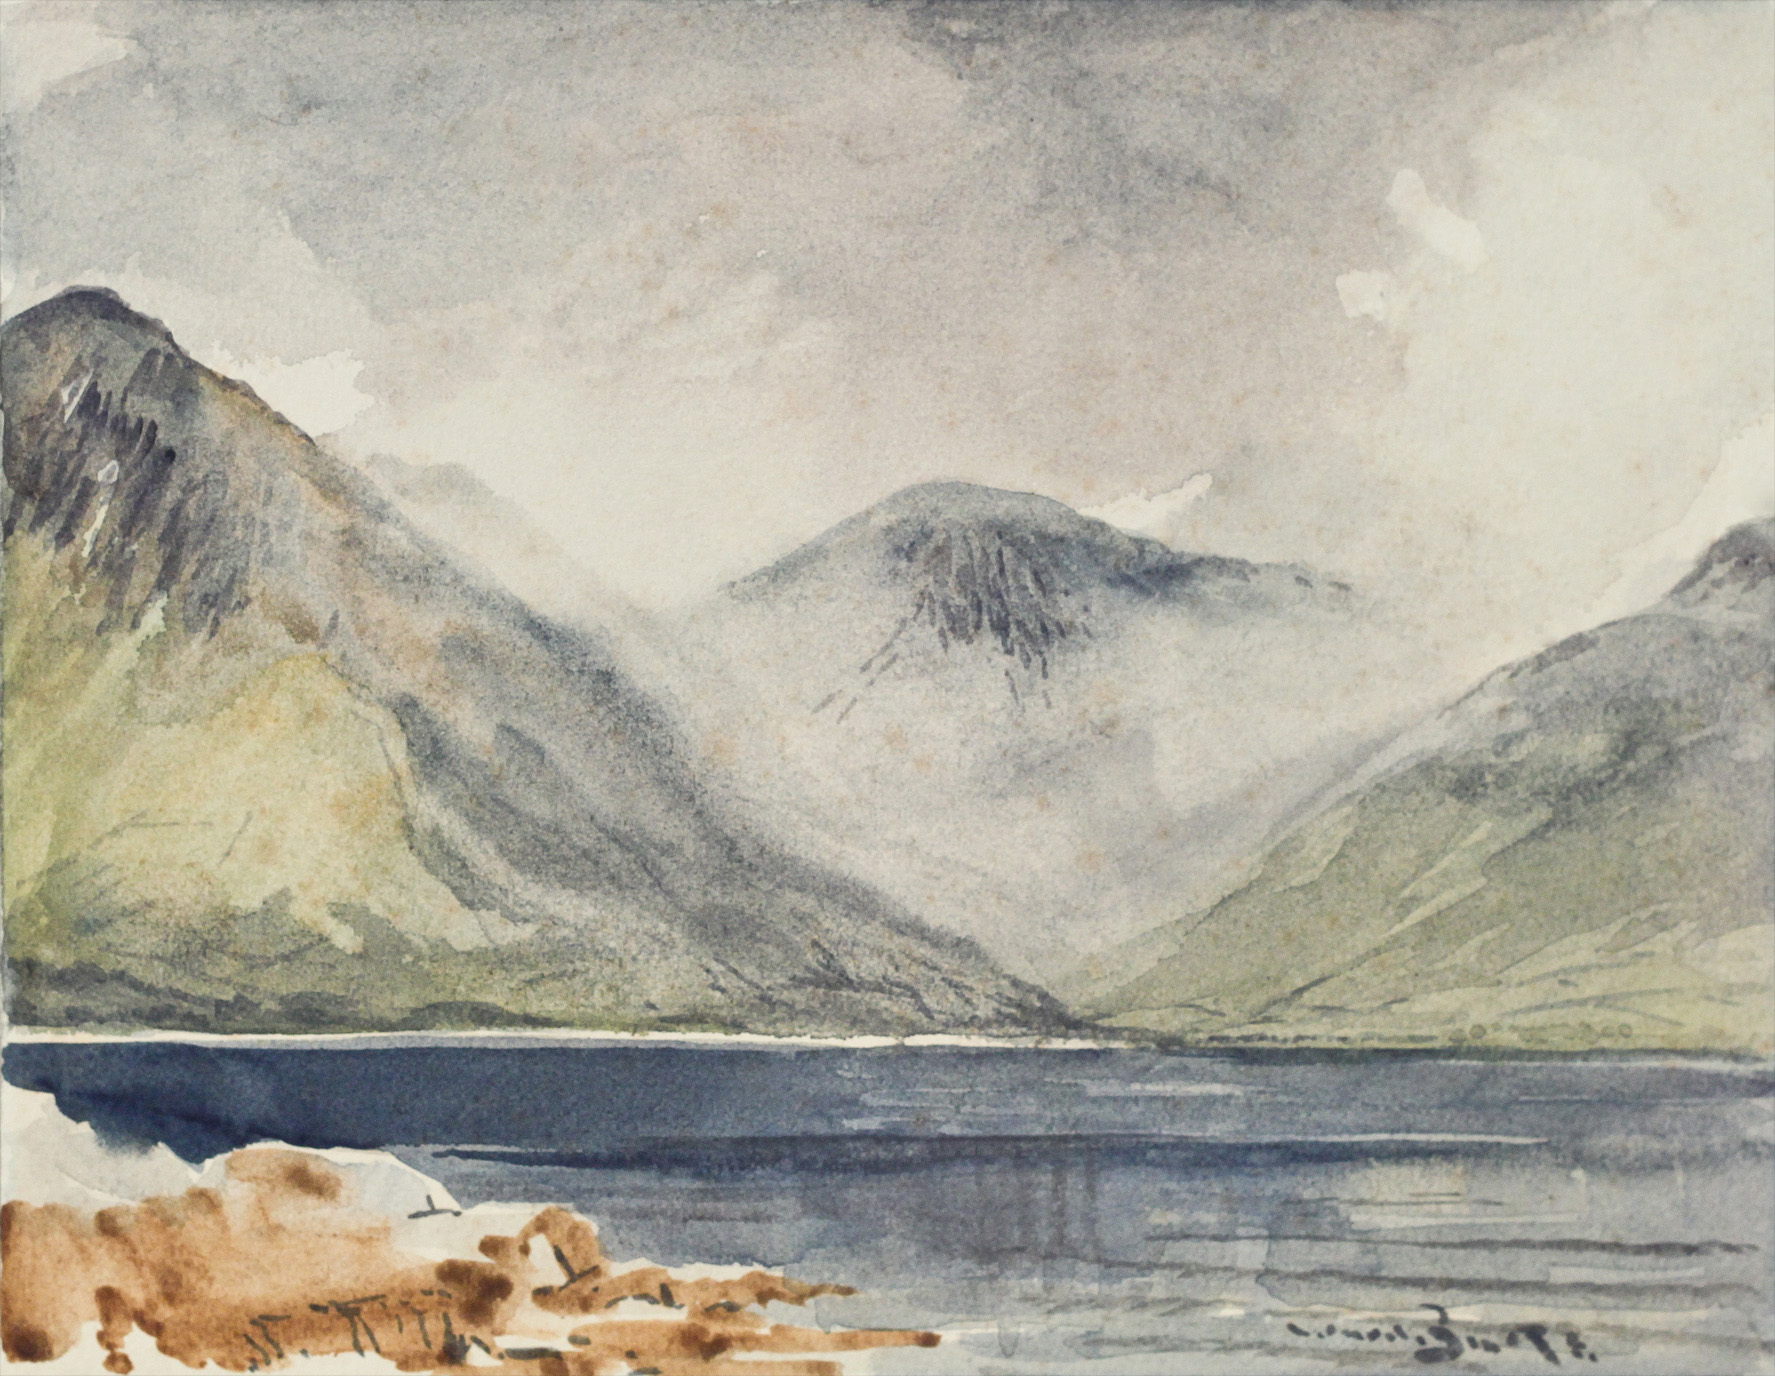 Click to see full size: Watercolour of Wastwater and Great Gable by Reuben Ward Binks (English, 1880-1950)- Watercolour of Wastwater and Great Gable by Reuben Ward Binks (English, 1880-1950)